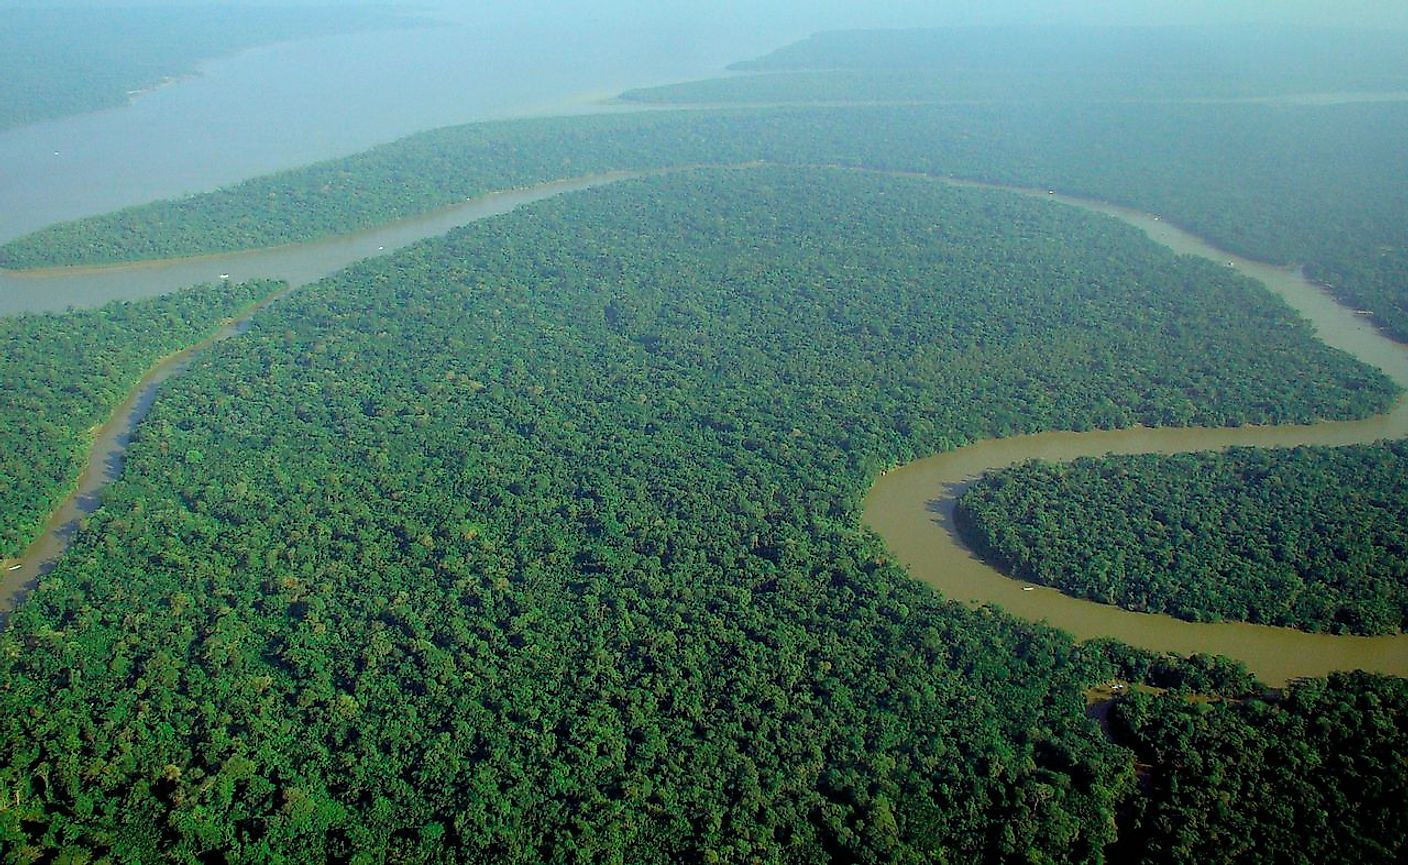 An aerial view of the dense Amazon rainforest of South America.